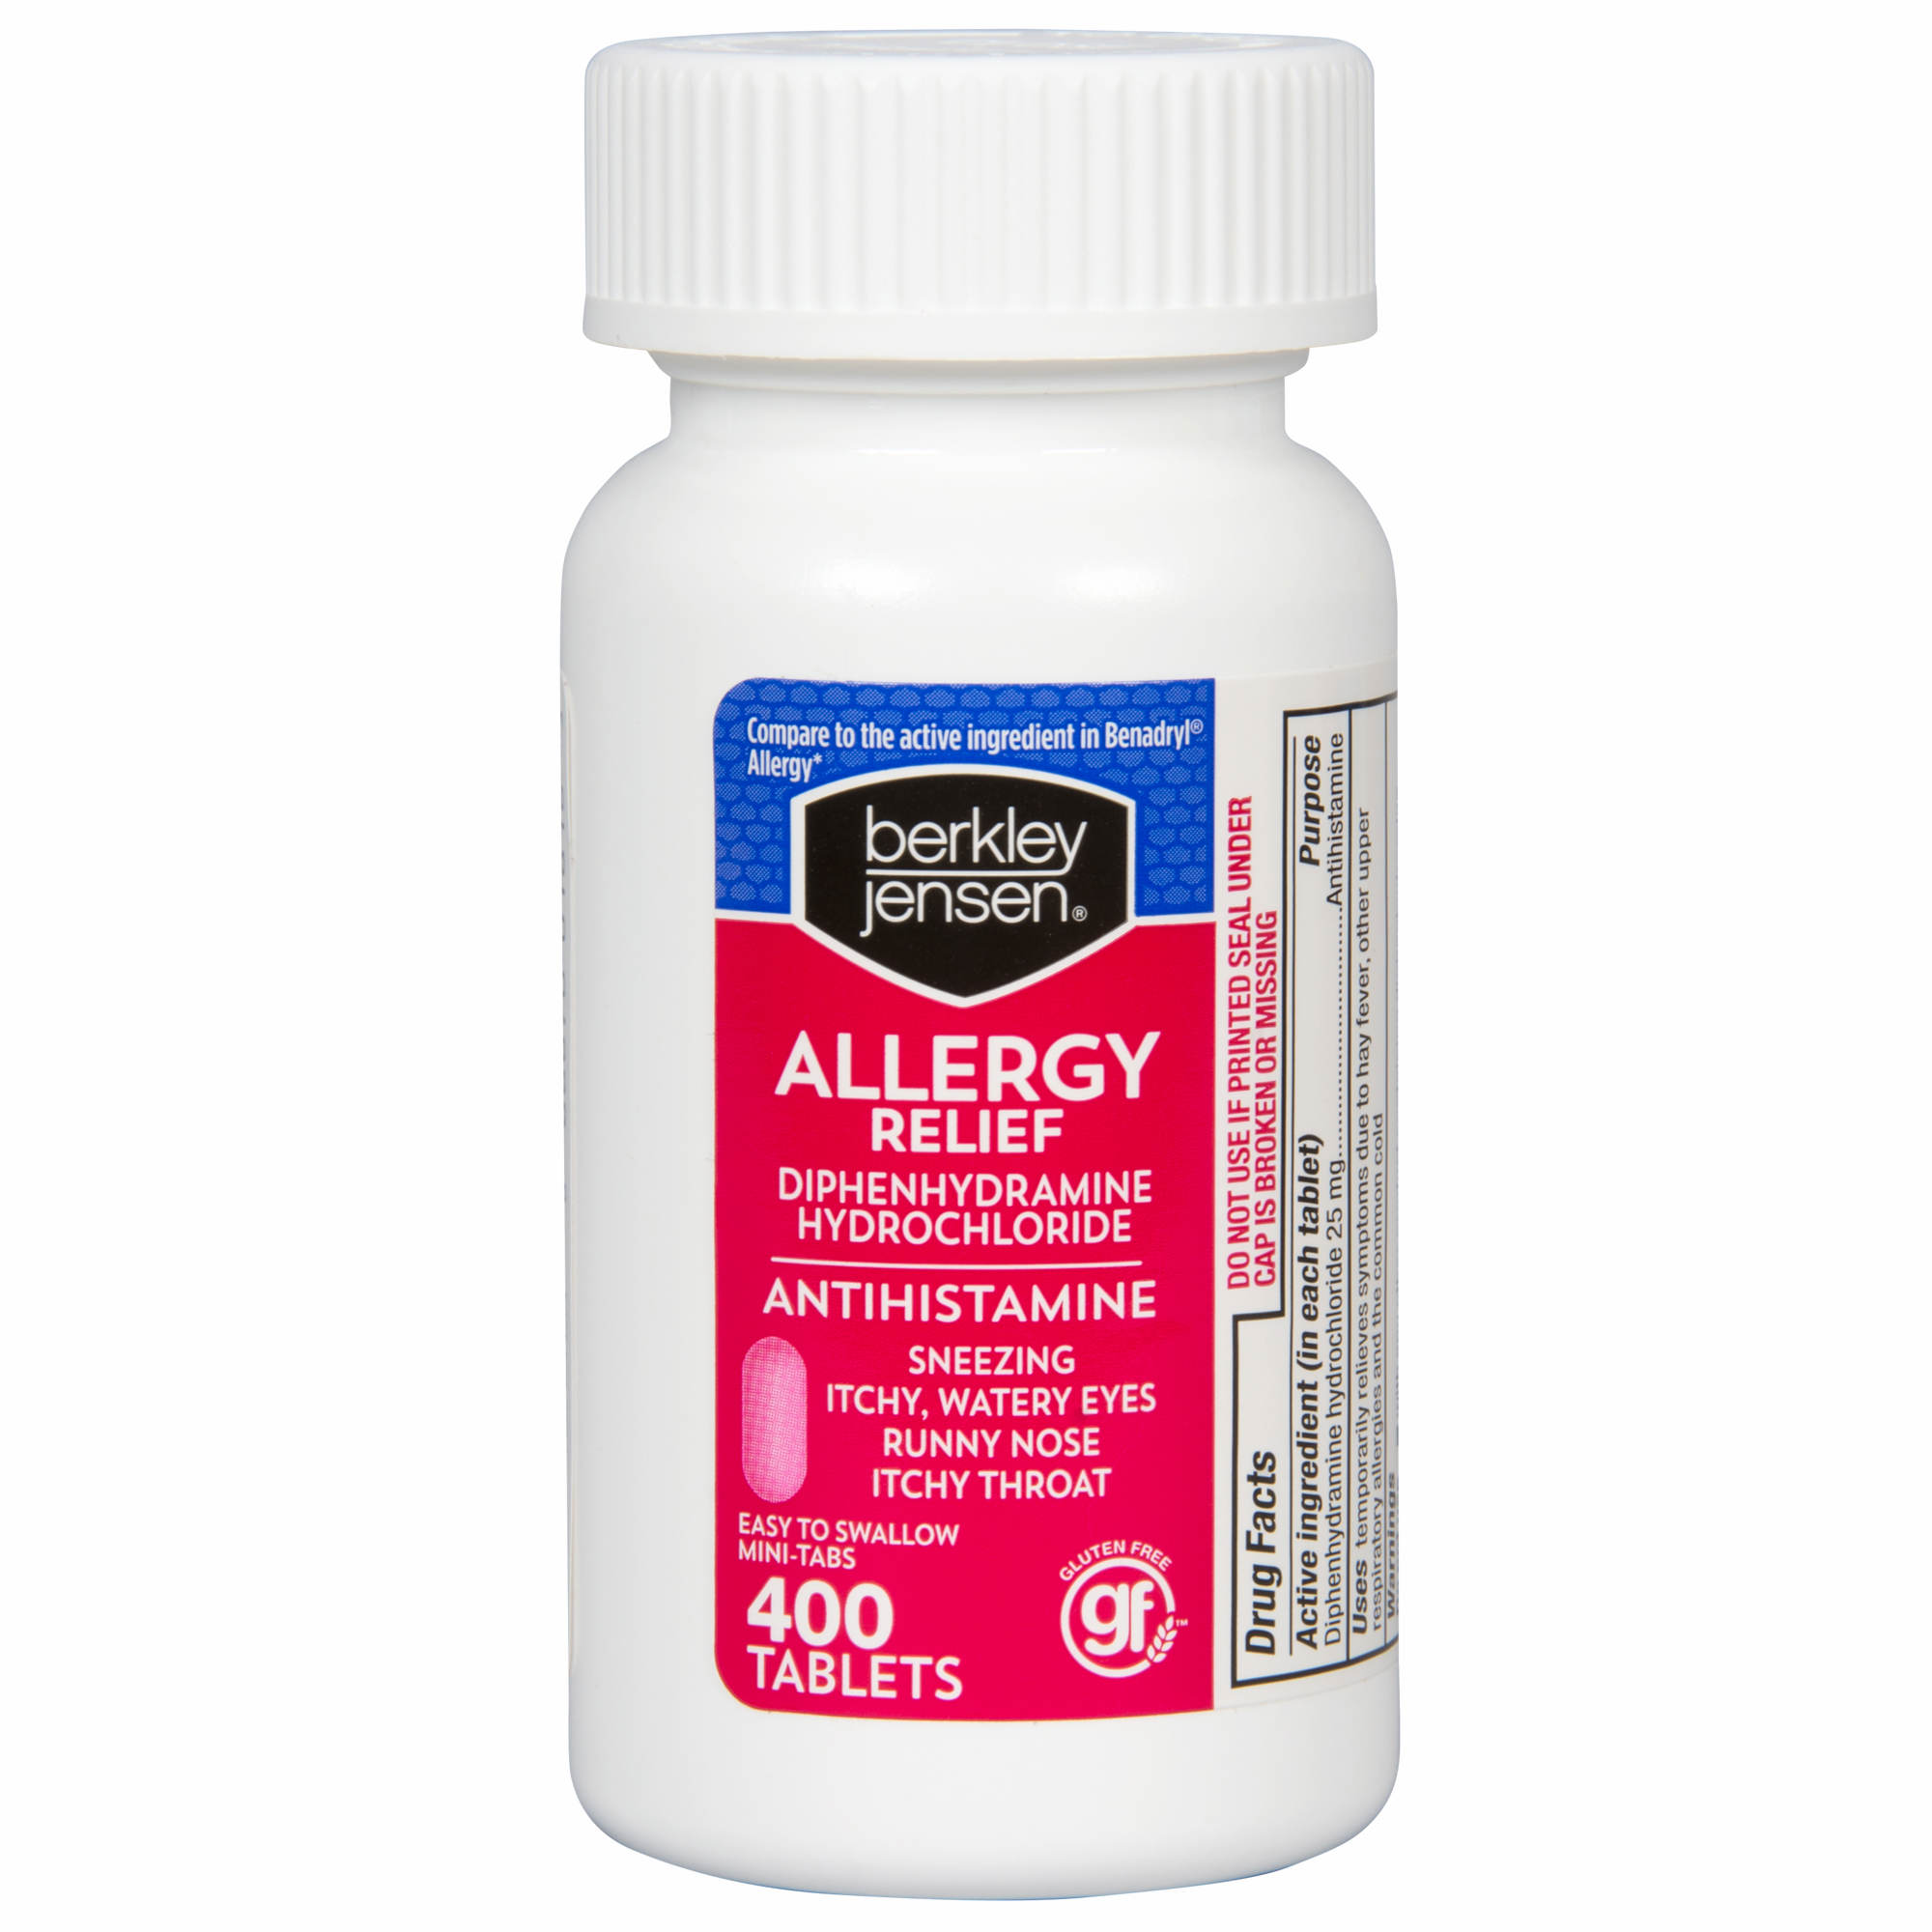 Berkley Jensen 25mg Diphenhydramine Hydrochloride Antihistamine Tablets, 400 ct. - image 2 of 2